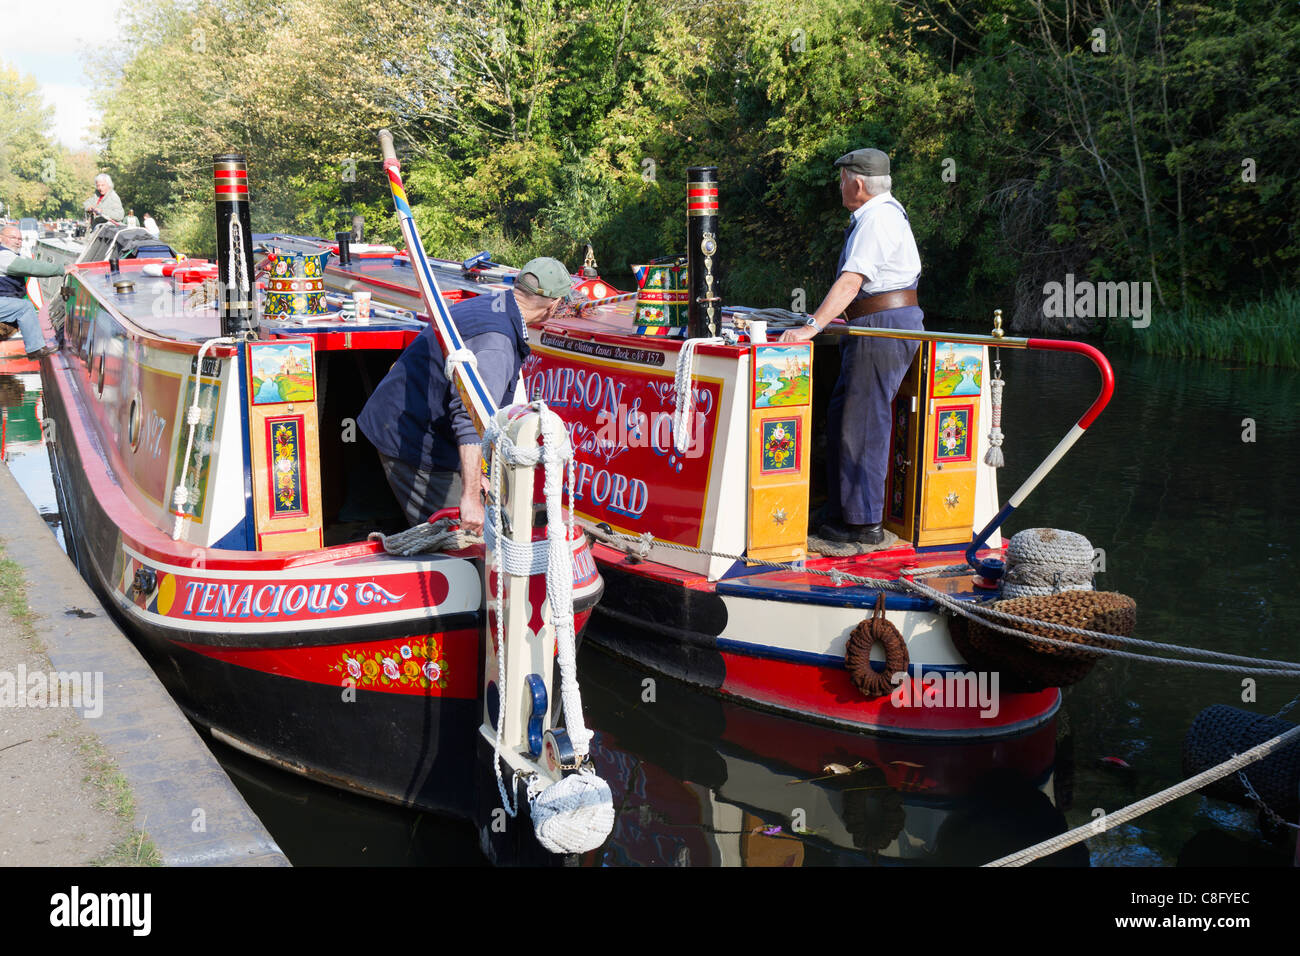 Narrow boat and butty getting ready to set off on a trip - Stock Image